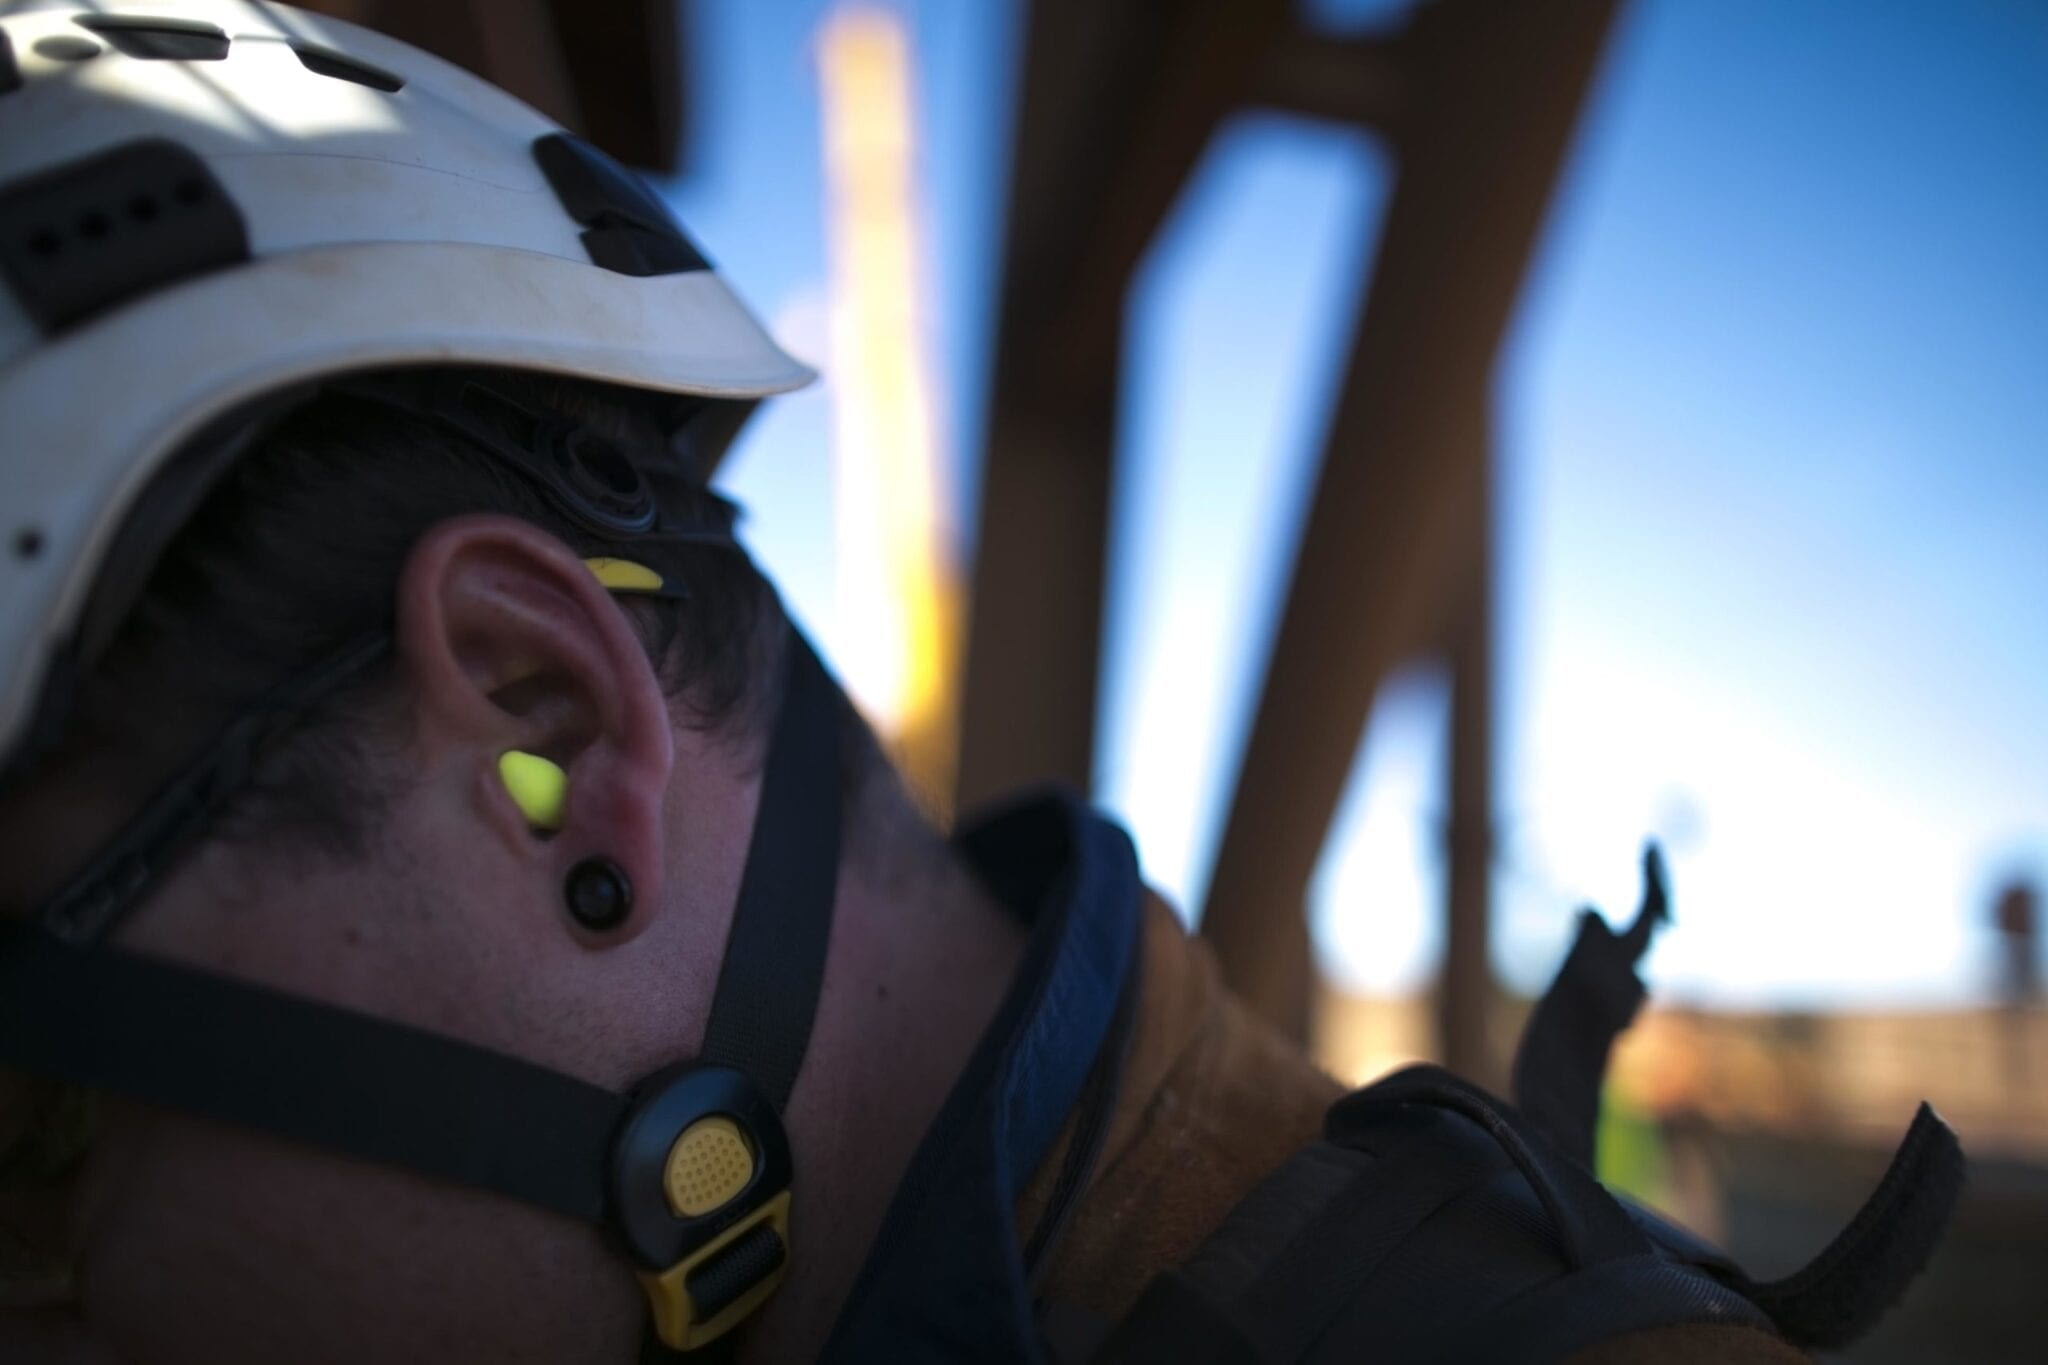 Miner worker wearing a ear plug noise safety protection when working near operating life plant machinery at construction site Perth, Australia